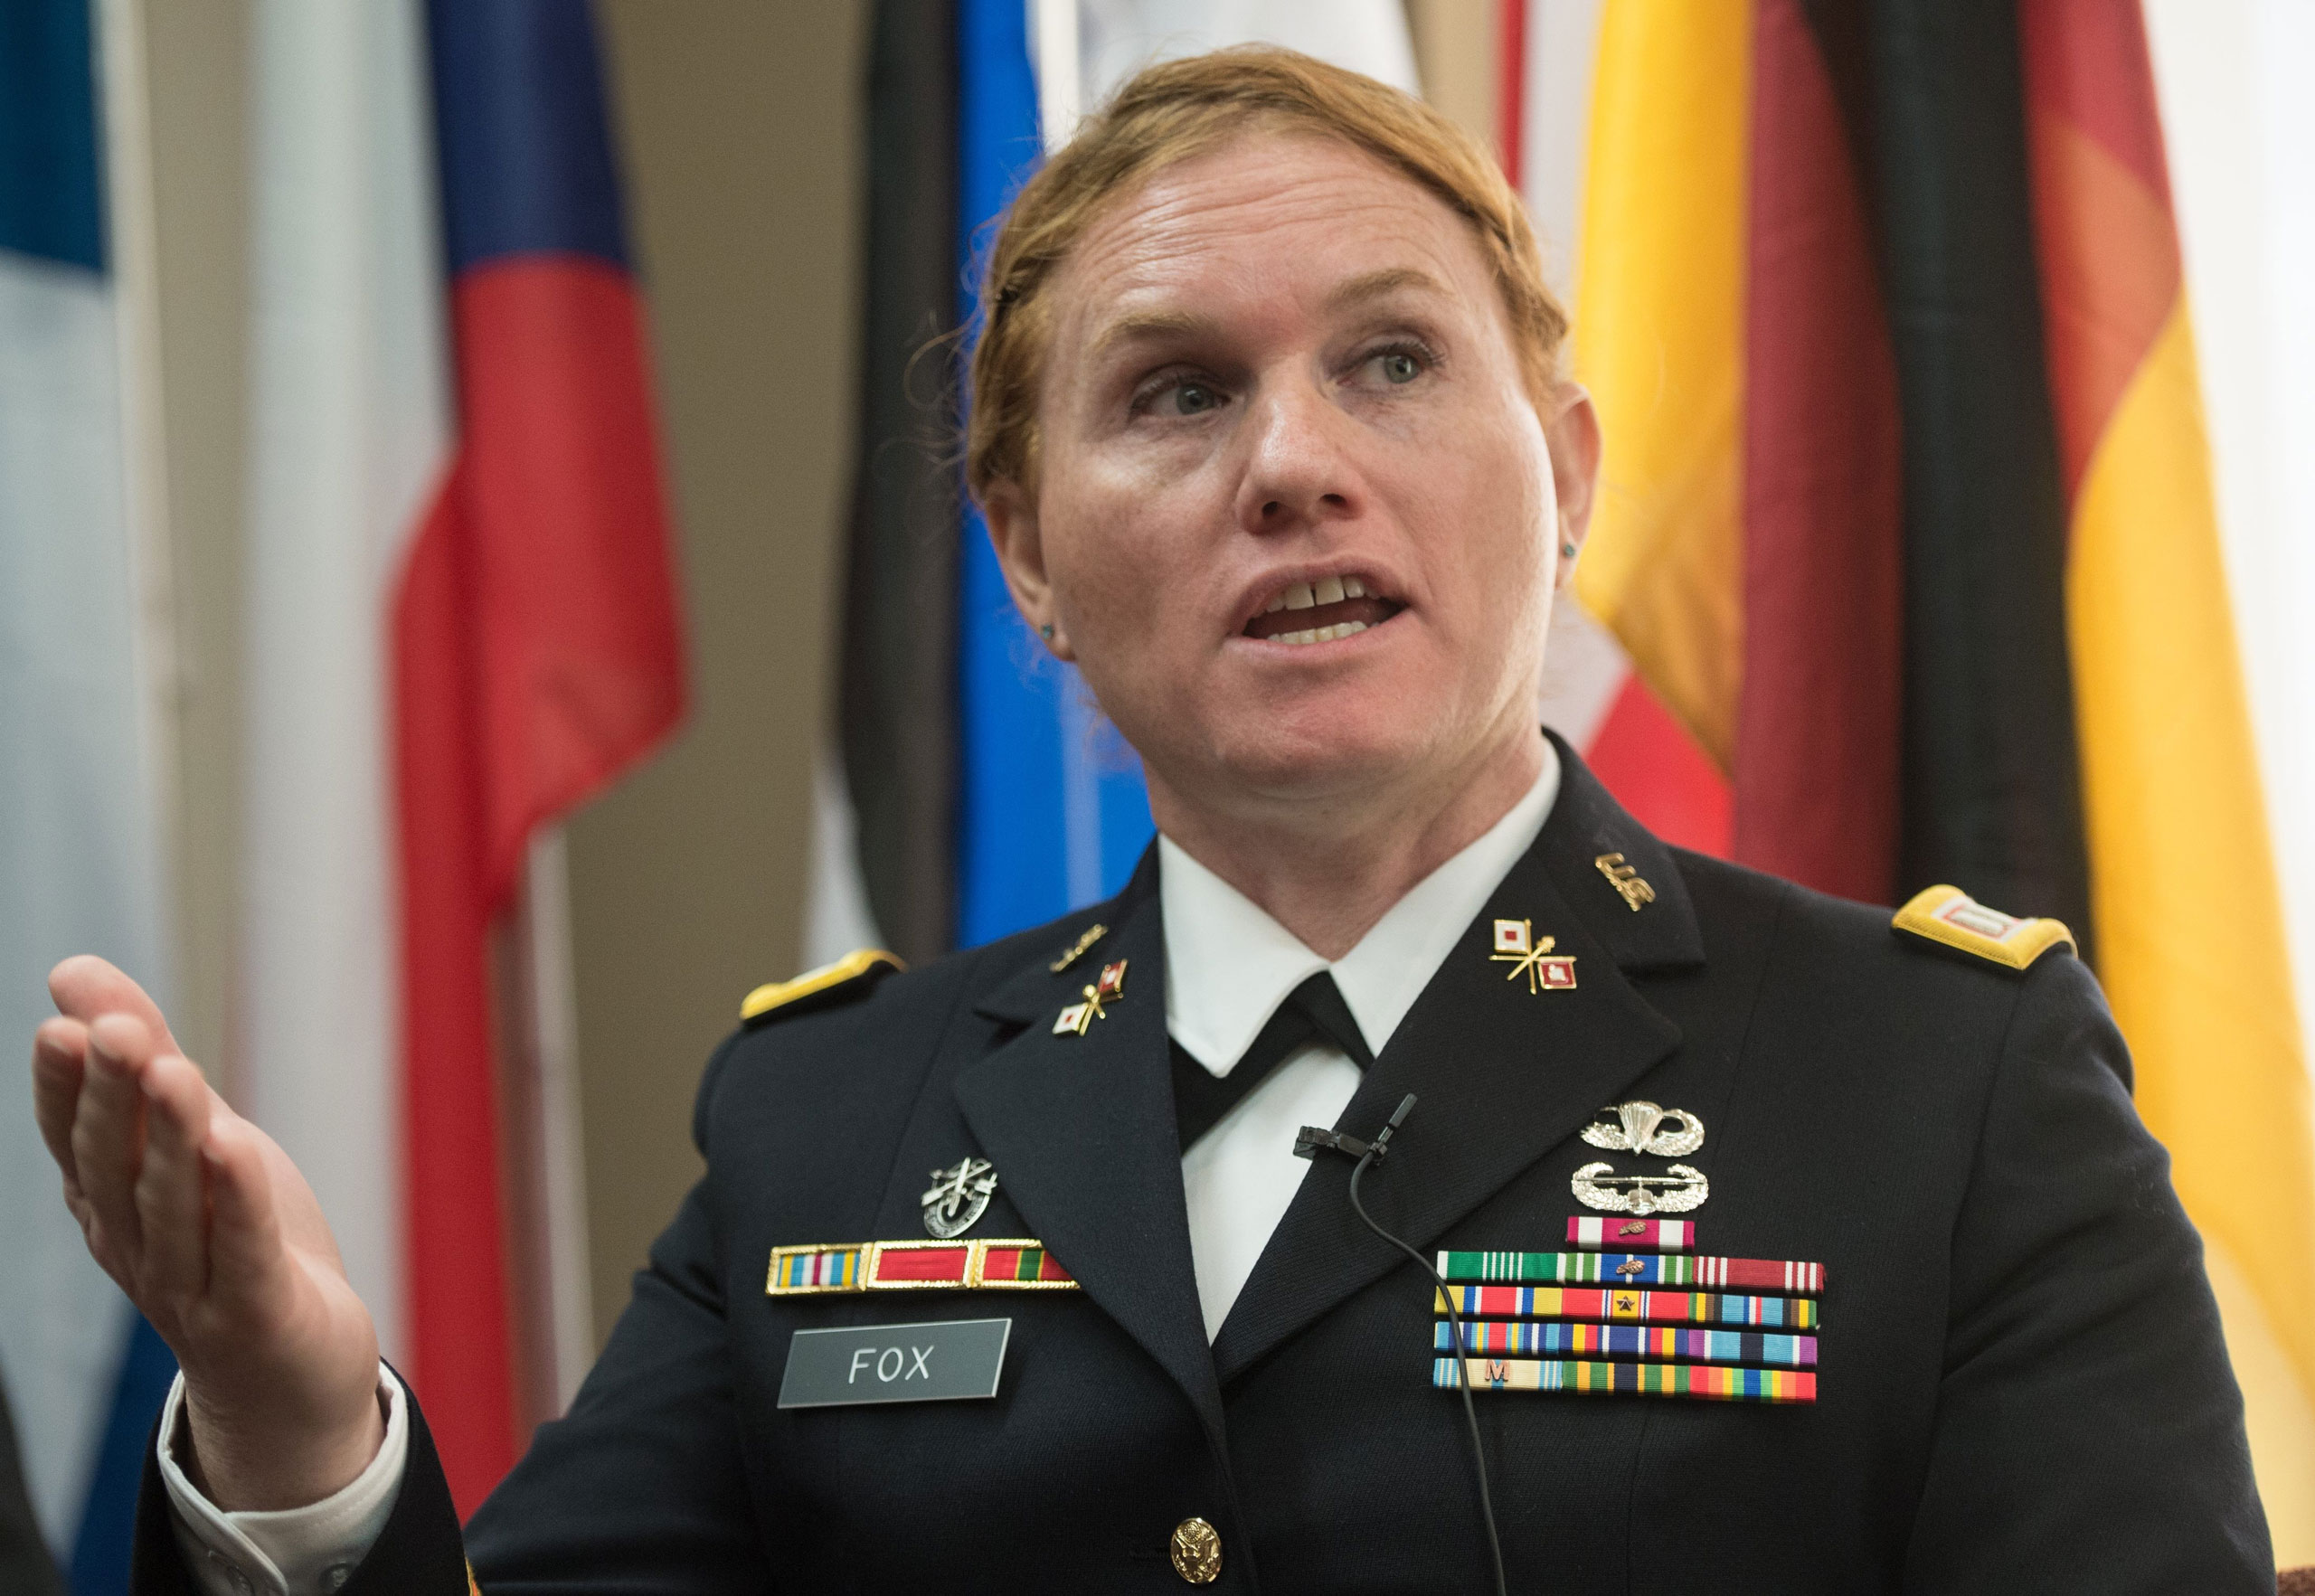 Transgender US Army Reseve Captain Sage Fox speaks during a conference entitled  Perspectives on Transgender Military Service from Around the Globe  organized by the American Civil Liberties Union (ACLU) and the Palm Center in Washington on October 20, 2014. Transgender military personnel from 18 countries who allow them to serve openly,  gathered to talk about their experiences and discuss whether the US military could join them. After Separtating from the military as a man, Fox legally changed her gender, and was invited to join the reserves as a woman.  AFP PHOTO/Nicholas KAMM        (Photo credit should read NICHOLAS KAMM/AFP/Getty Images)